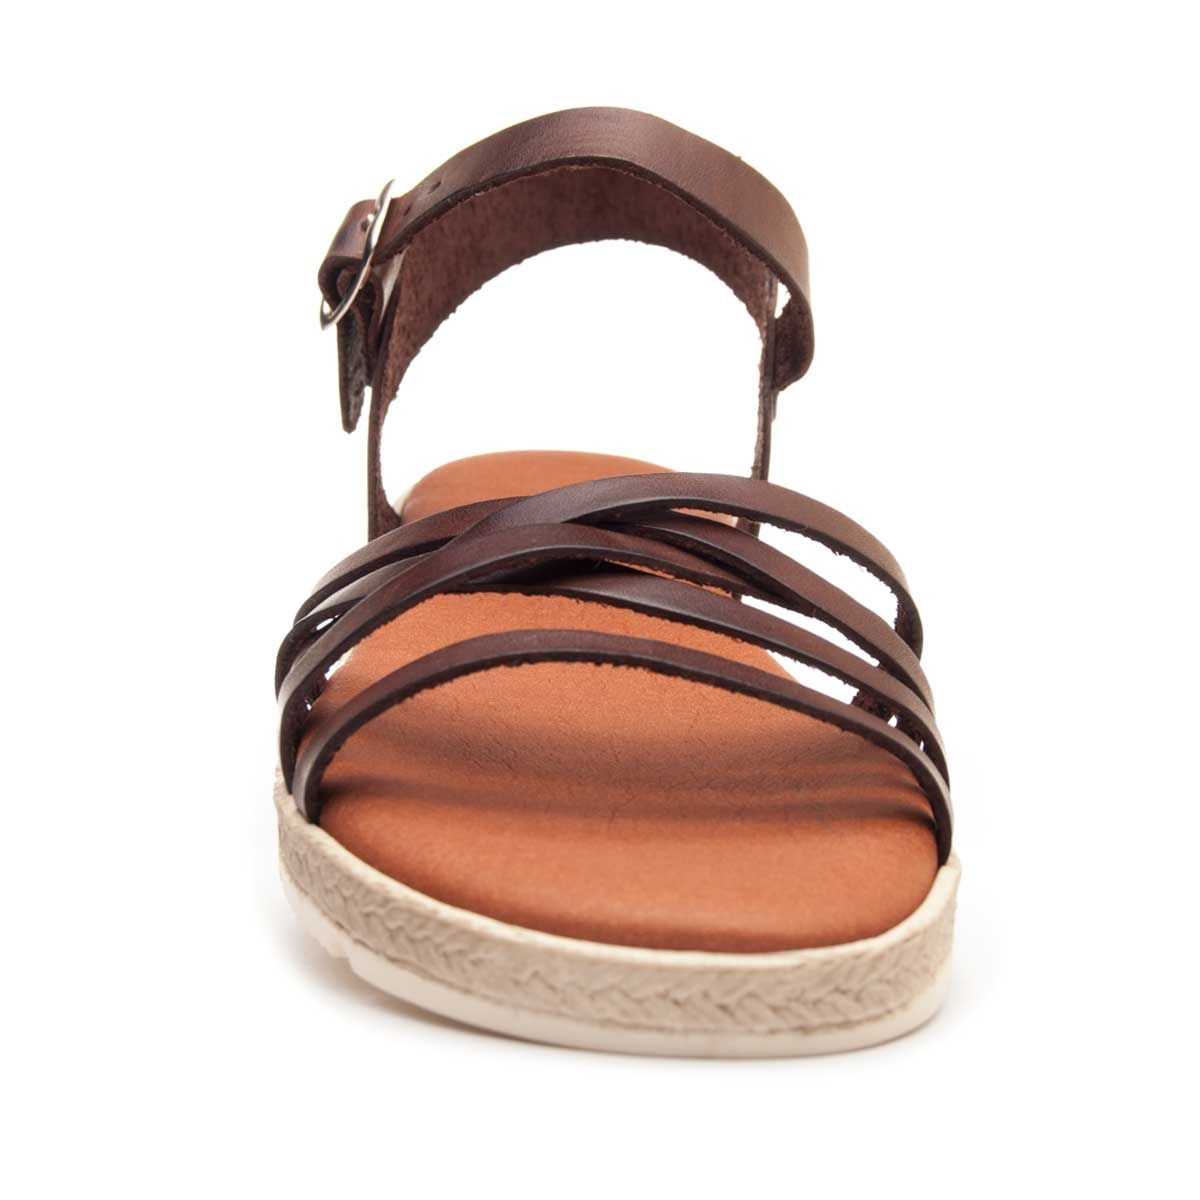 Leindia Strappy Sandal in Camel